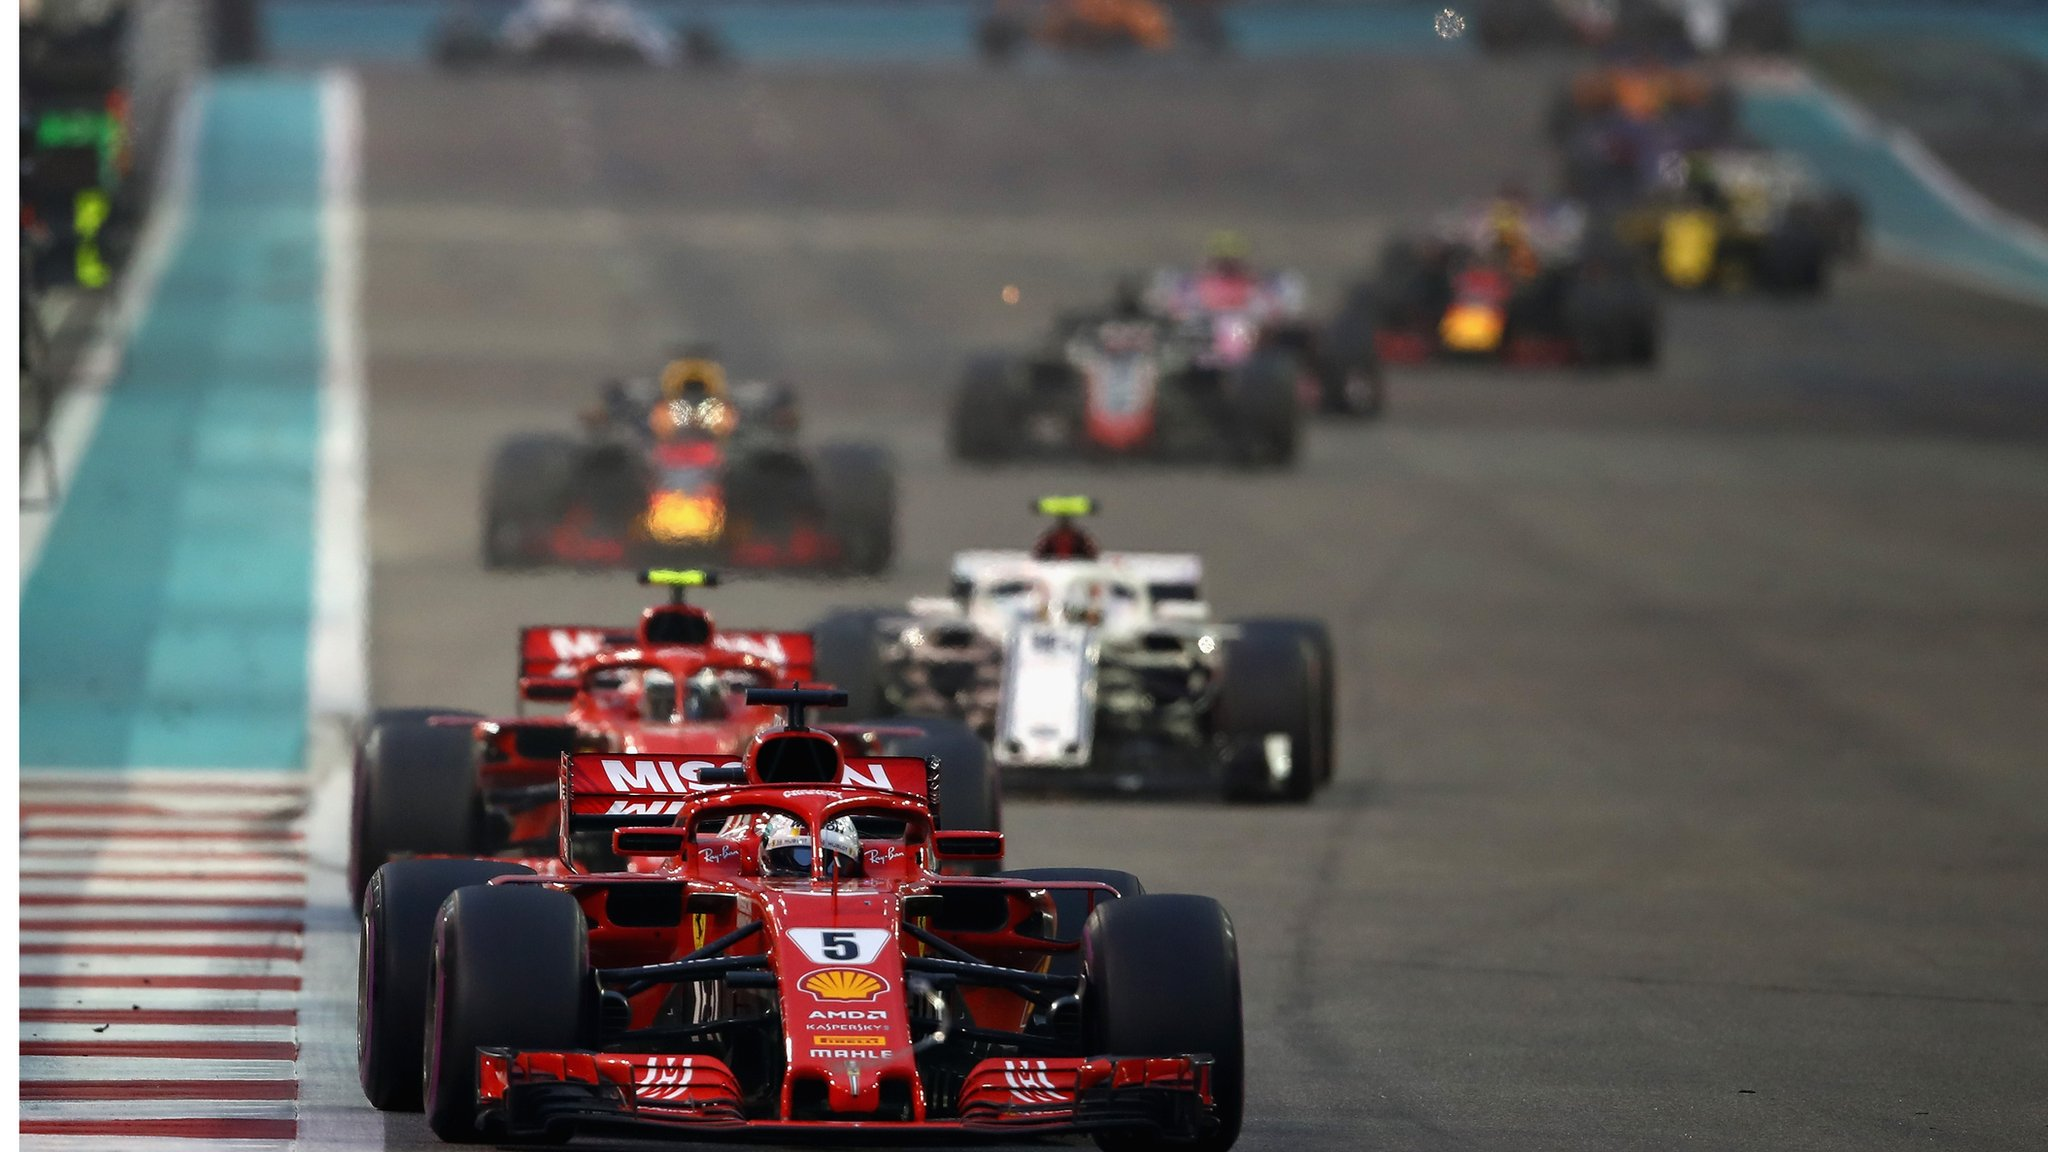 F1: Quality of racing could improve by 20% in 2019, says Ross Brawn